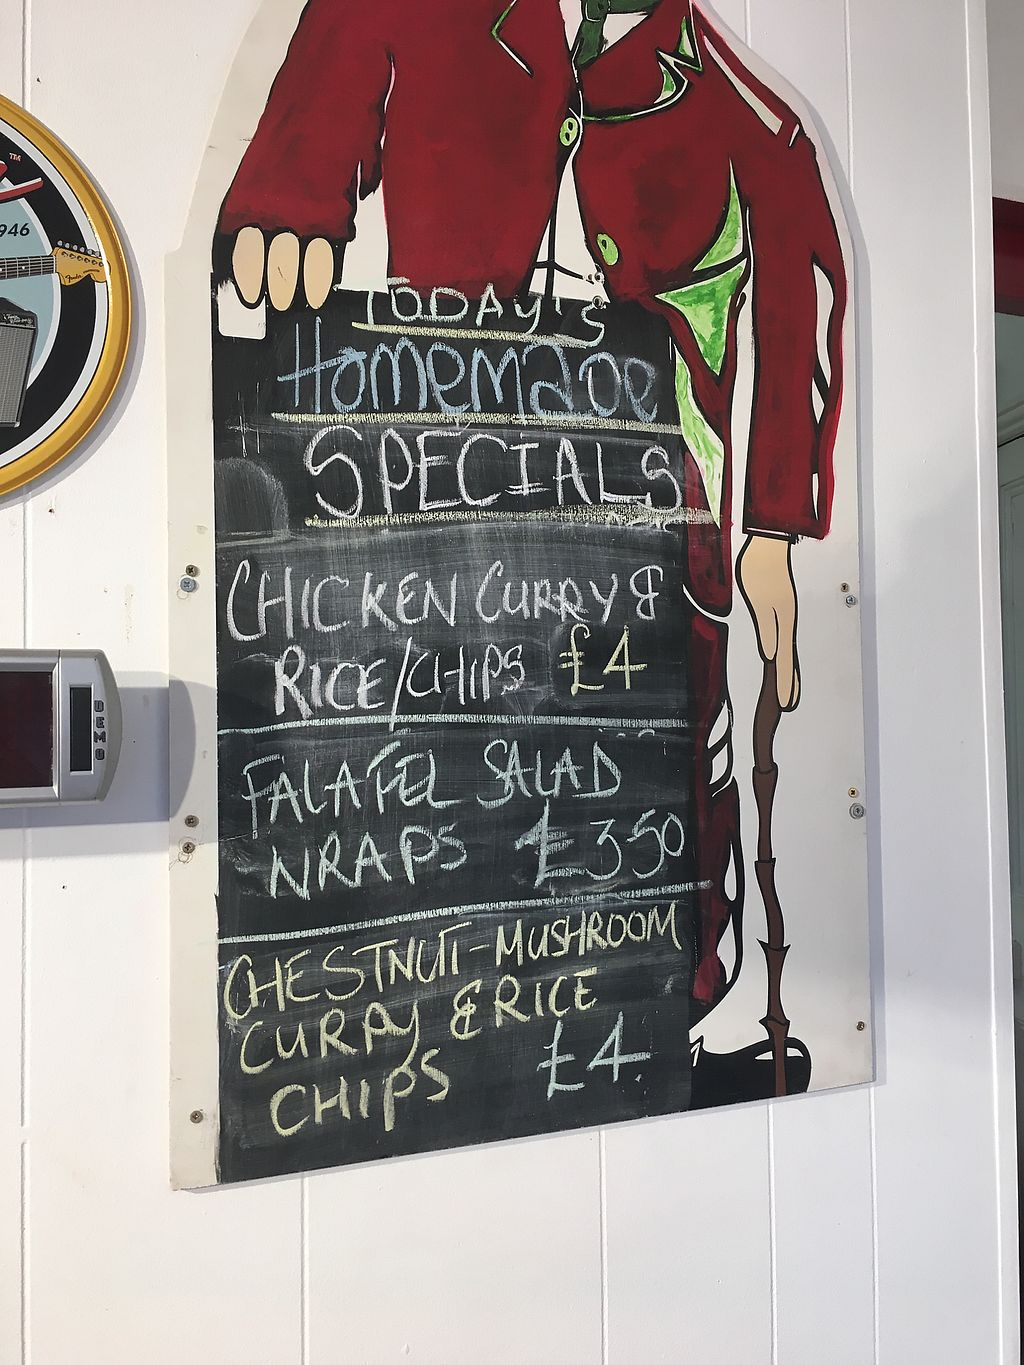 """Photo of The Get Stuffed Pie House  by <a href=""""/members/profile/Superteebs"""">Superteebs</a> <br/>Vegan specials board <br/> October 27, 2017  - <a href='/contact/abuse/image/98667/319182'>Report</a>"""